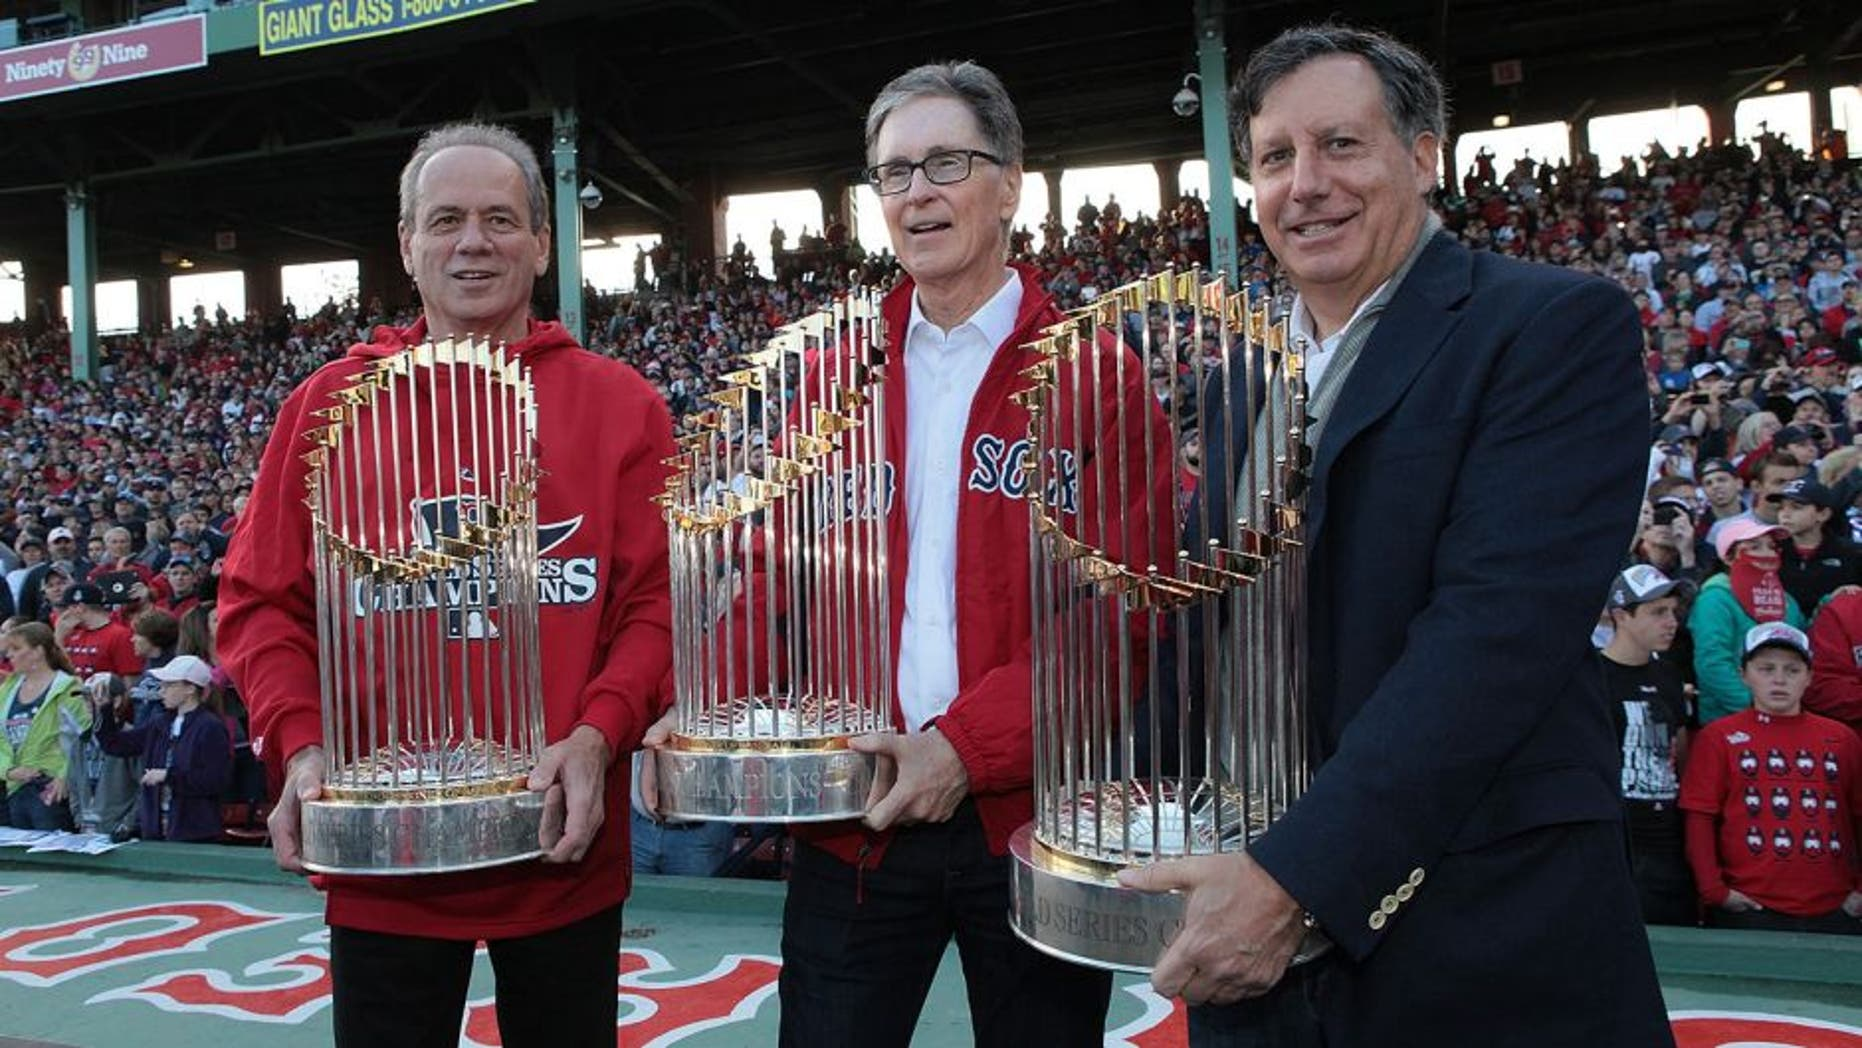 BOSTON, MA - NOVEMBER 2: President and CEO of the Boston Red Sox Larry Lucchino, (left), Red Sox principal own John Henry (center), and Red Sox chairmanTom Werner show off the World Series trophies to the crowd at Fenway Park before the Red Sox players board the duck boats for the World Series victory parade for the Boston Red Sox on November 2, 2013 in Boston, Massachusetts. (Photo by Gail Oskin/Getty Images)